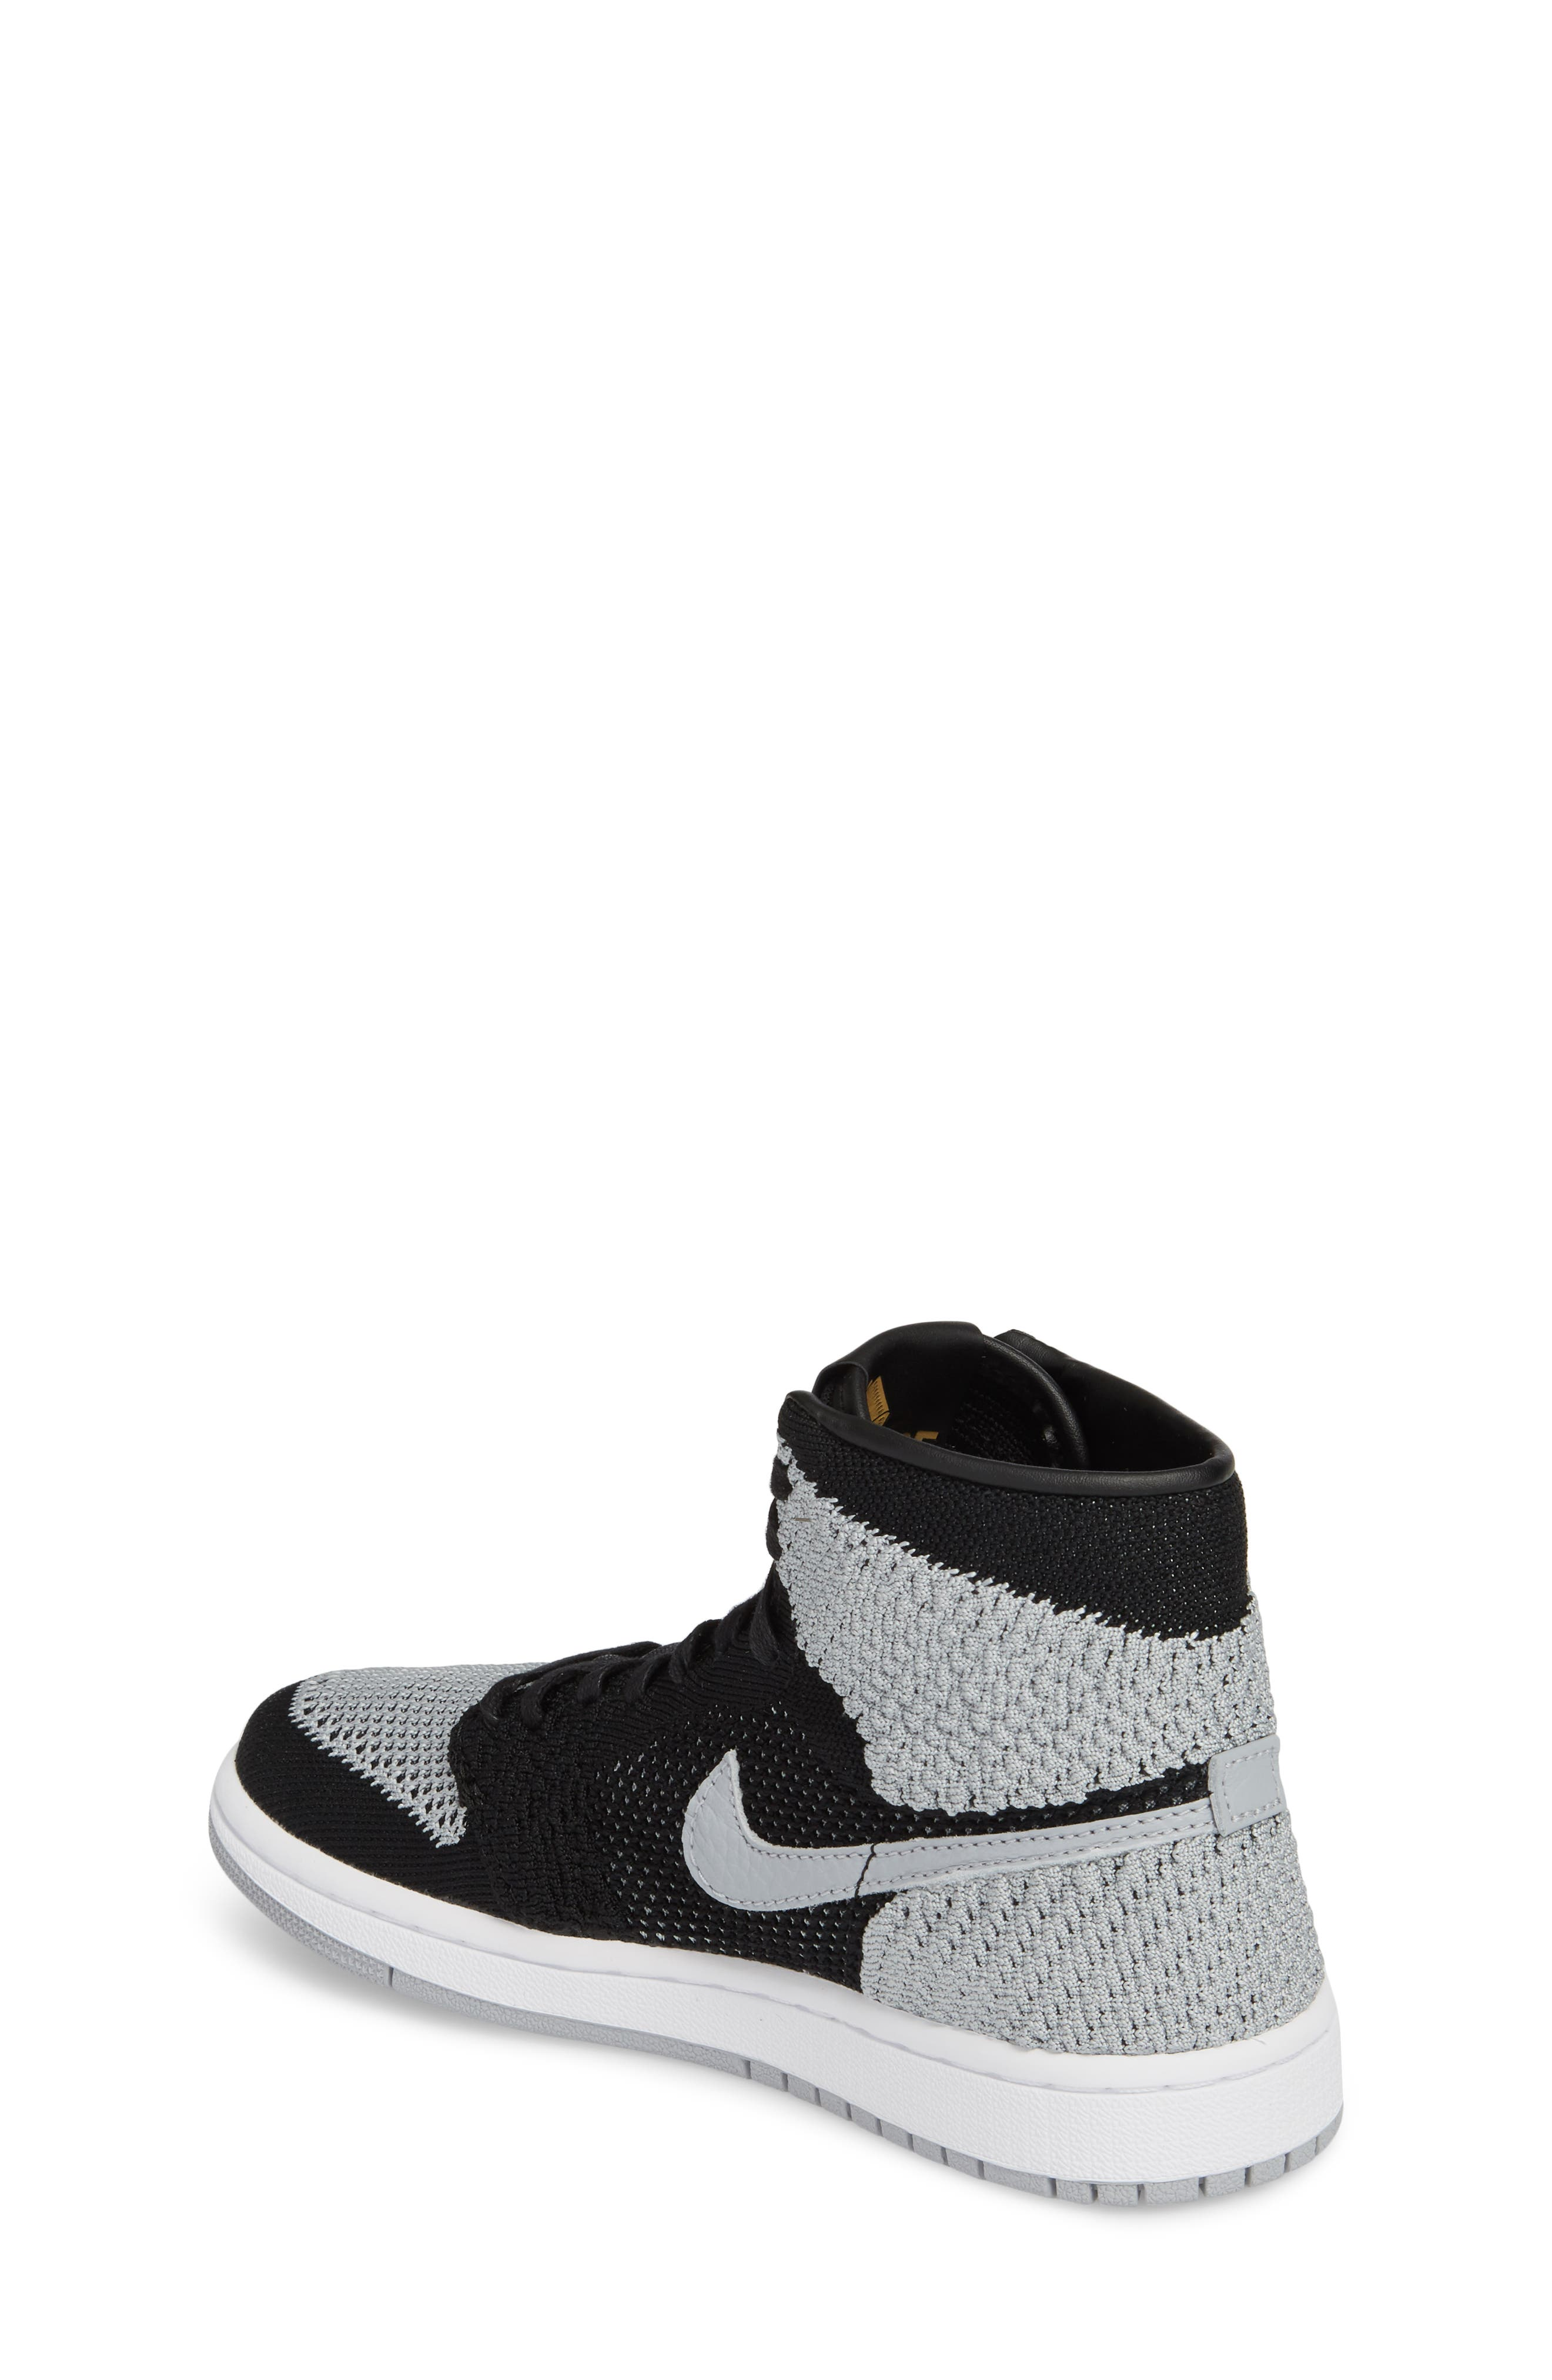 Nike Air Jordan 1 Retro High Flyknit Sneaker,                             Alternate thumbnail 2, color,                             Black/ Wolf Grey/ White